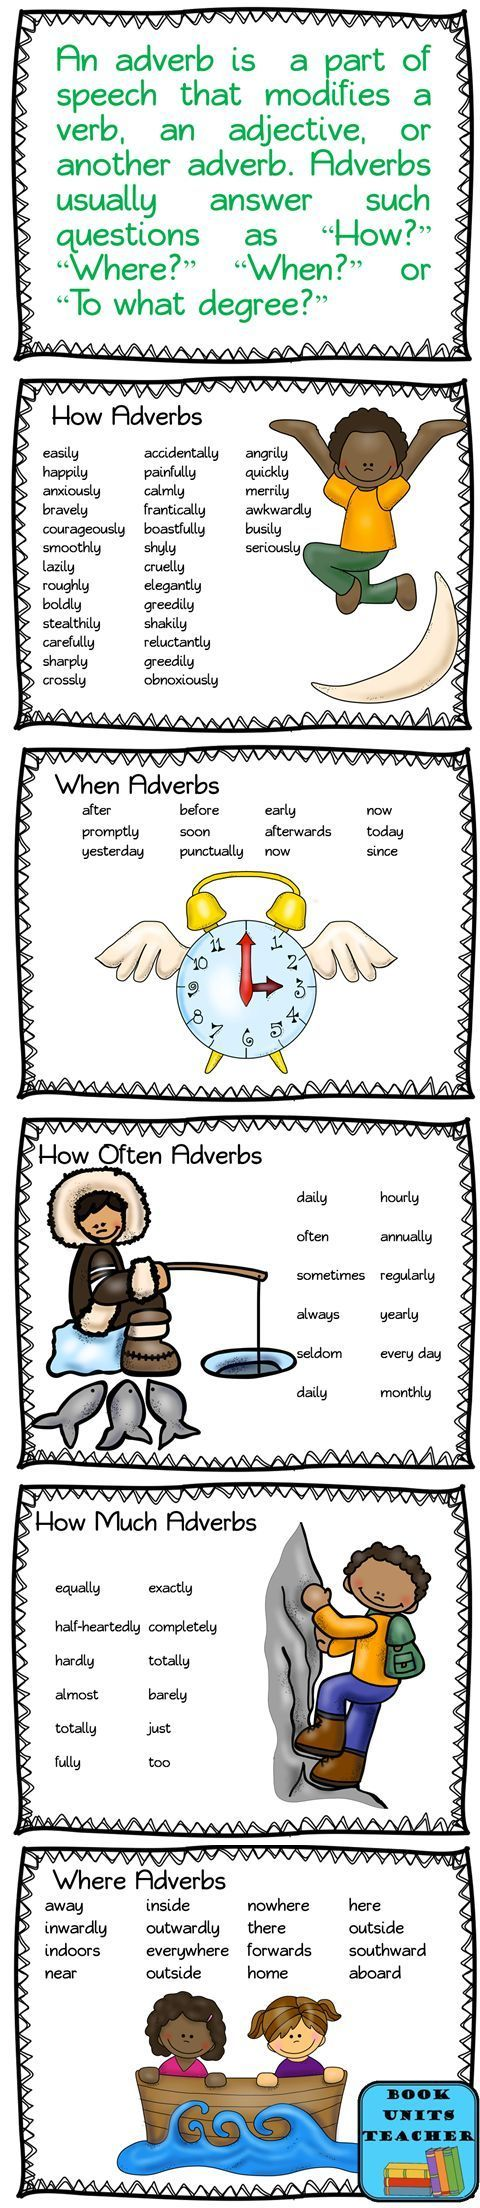 Frequency Adverbs/Simple Present Tense ADVERBS